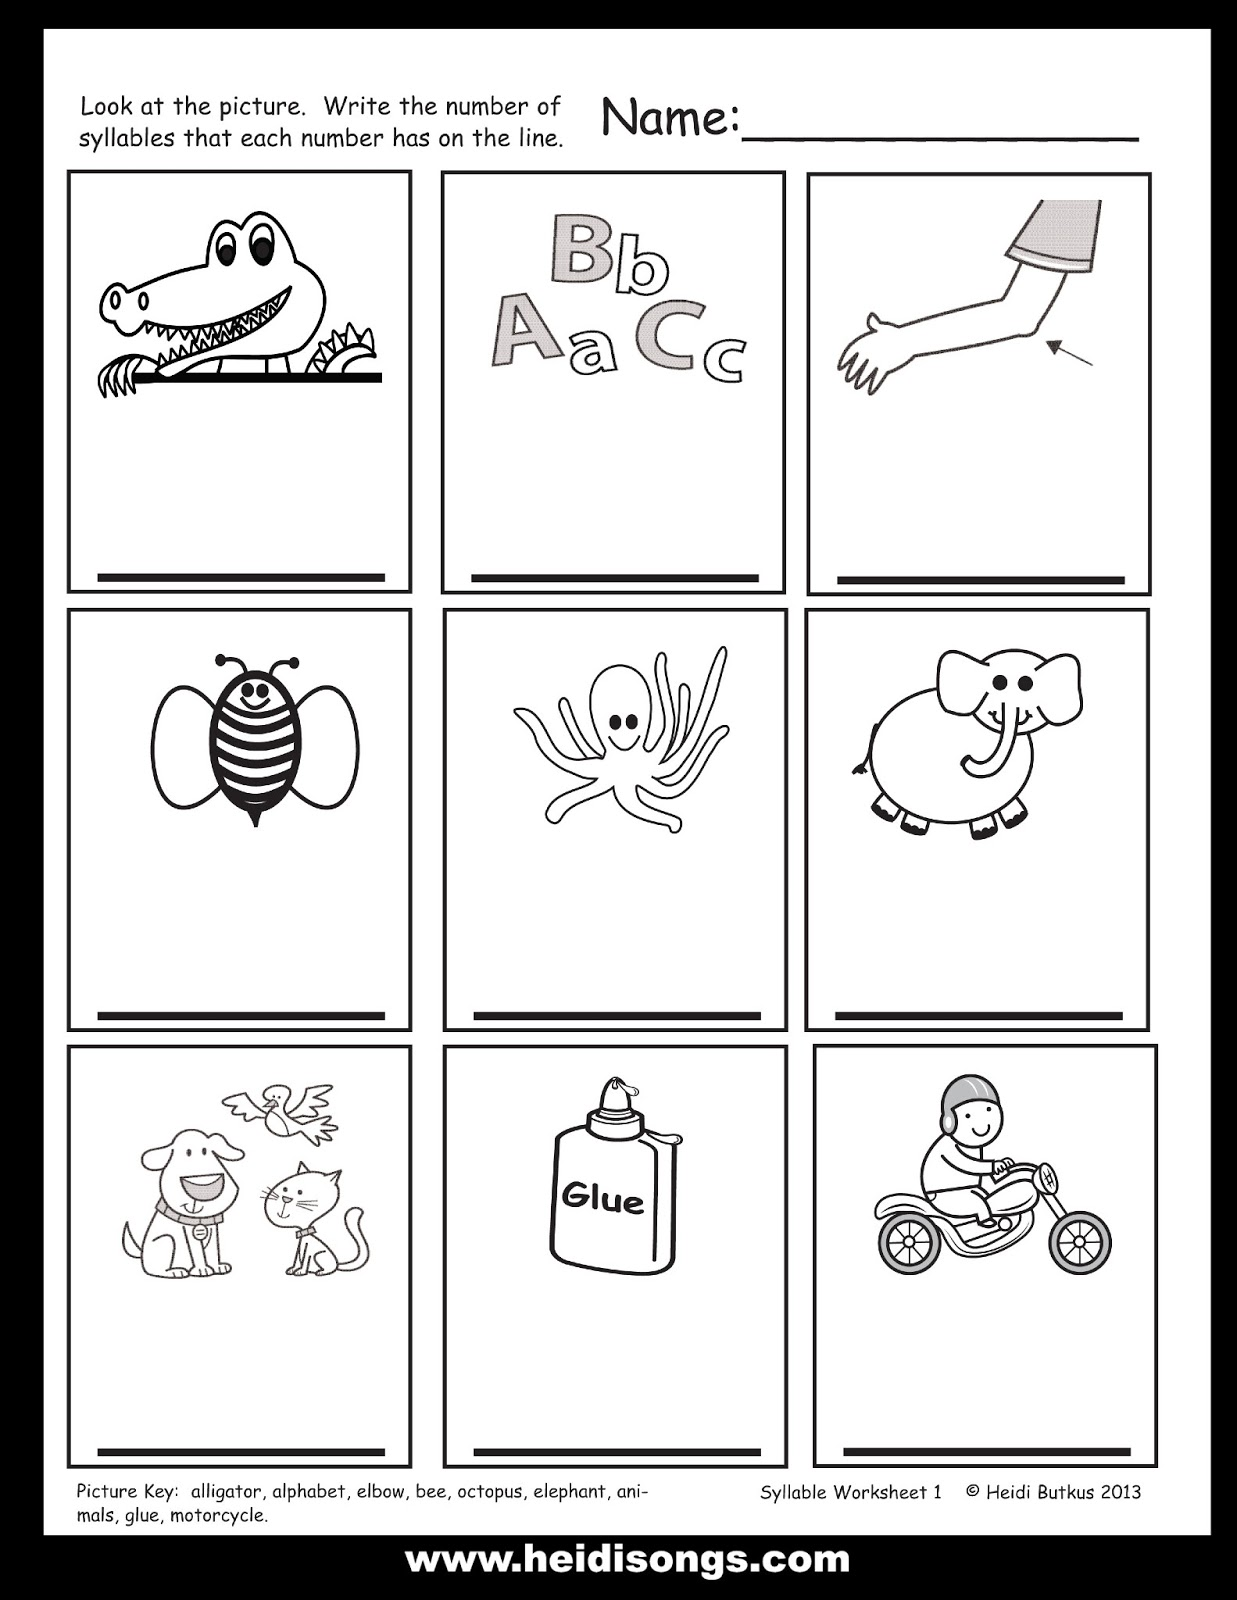 medium resolution of Decoding Multisyllabic Words Worksheets 5th Grade   Printable Worksheets  and Activities for Teachers